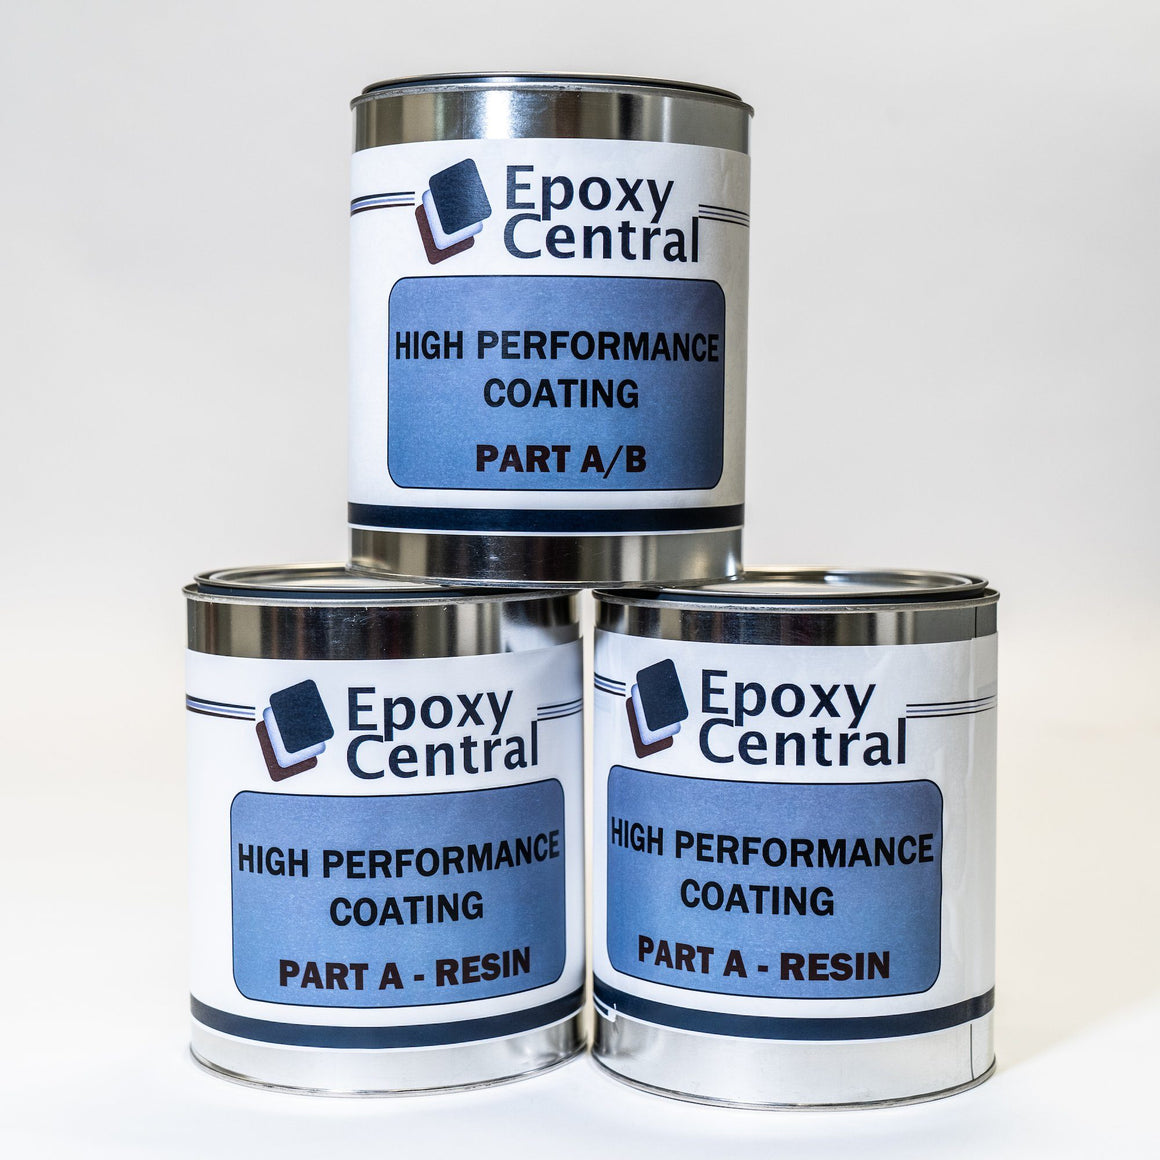 Base Coat - 100% Solids High Build Epoxy Coating